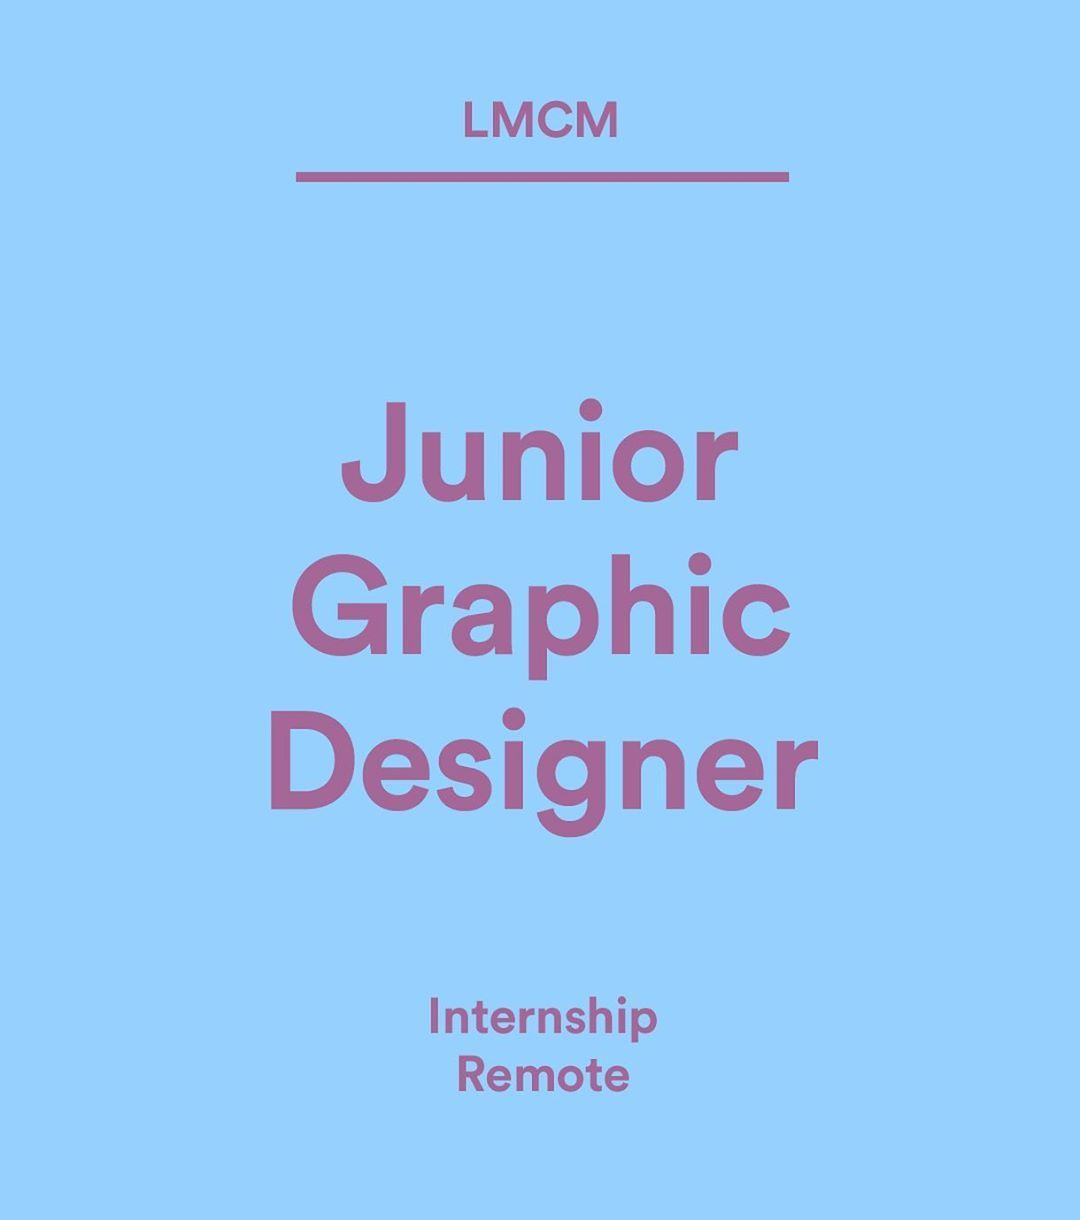 Wethemakersjobs Lmcm Is Hiring Hi There Lmcm Is Looking For A Junior Graphic Designer To Join Their Team They Are A De Graphic Design Design Agency Design